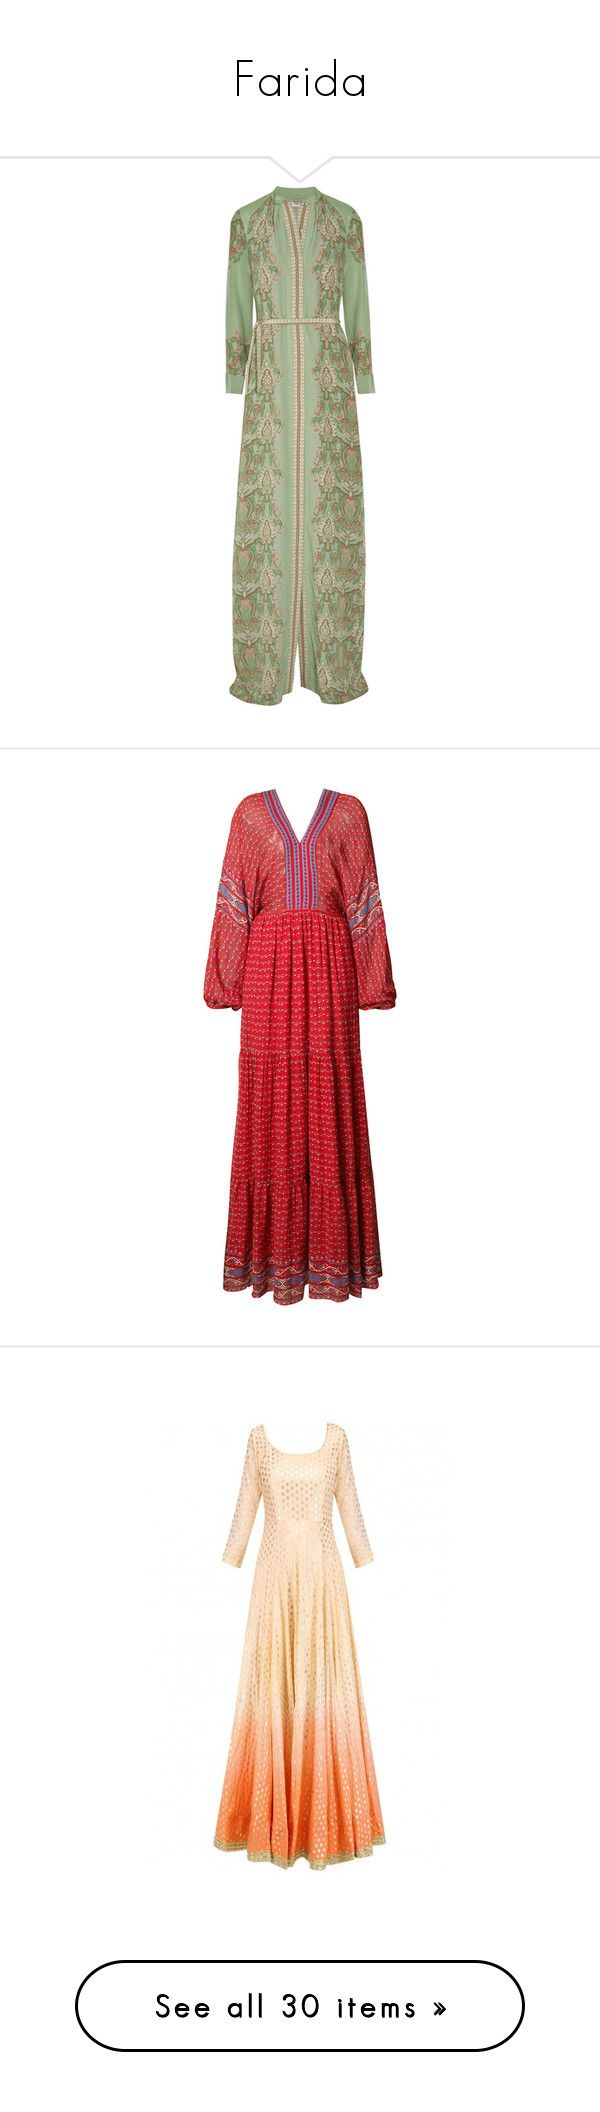 """""""Farida"""" by shulamithbond on Polyvore featuring dresses, gowns, vilshenko, maxi dress, green, green evening dress, evening maxi dresses, multi color maxi dress, green maxi dress and green gown"""